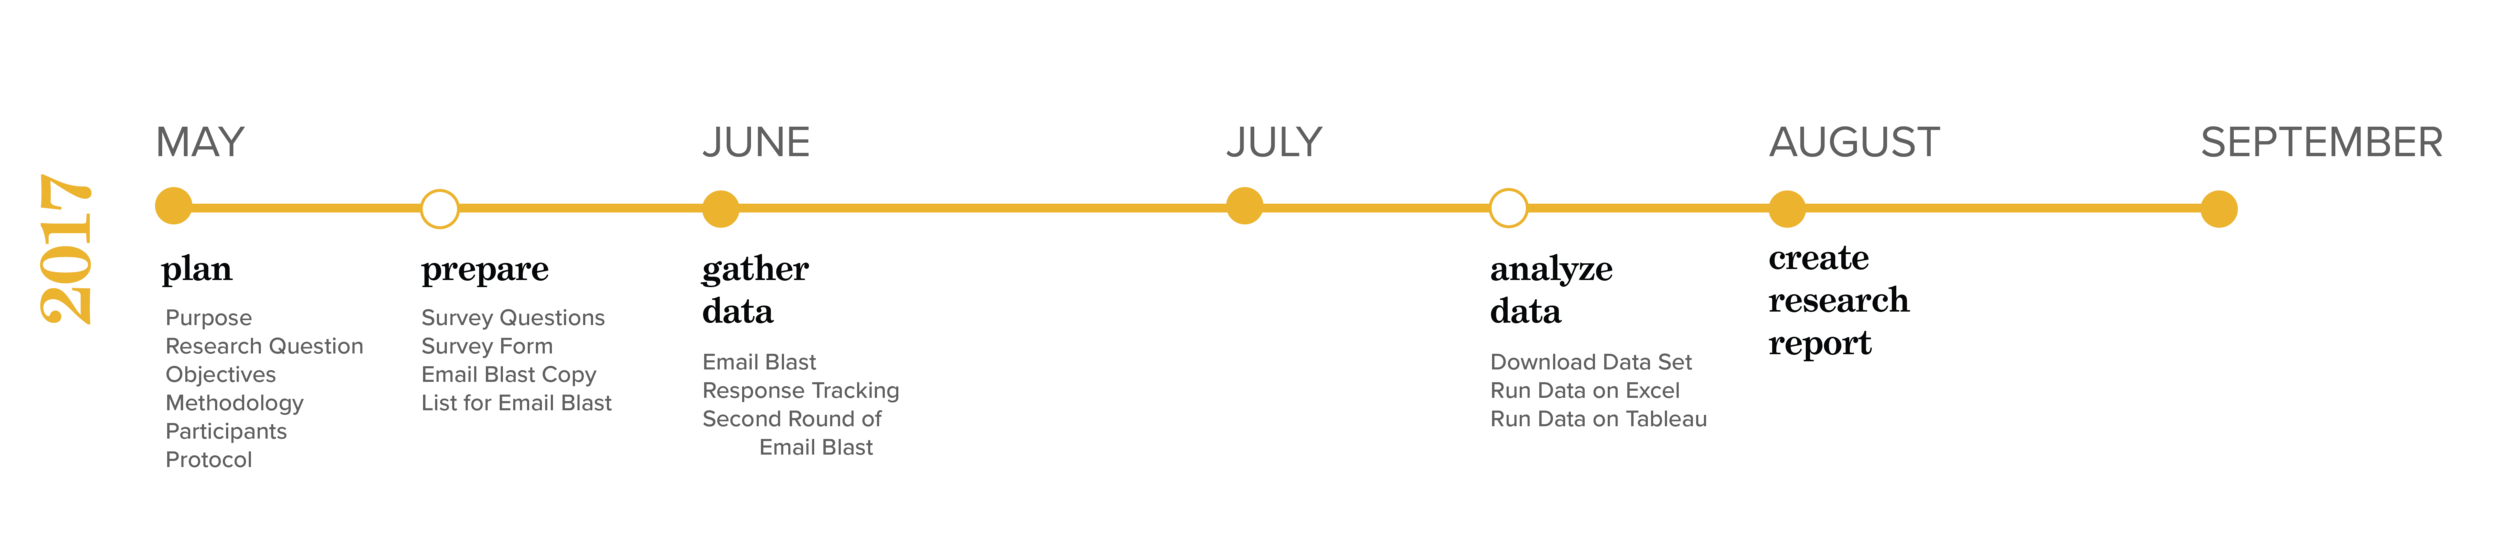 Job Seeking Behavior Project Timeline-03.png